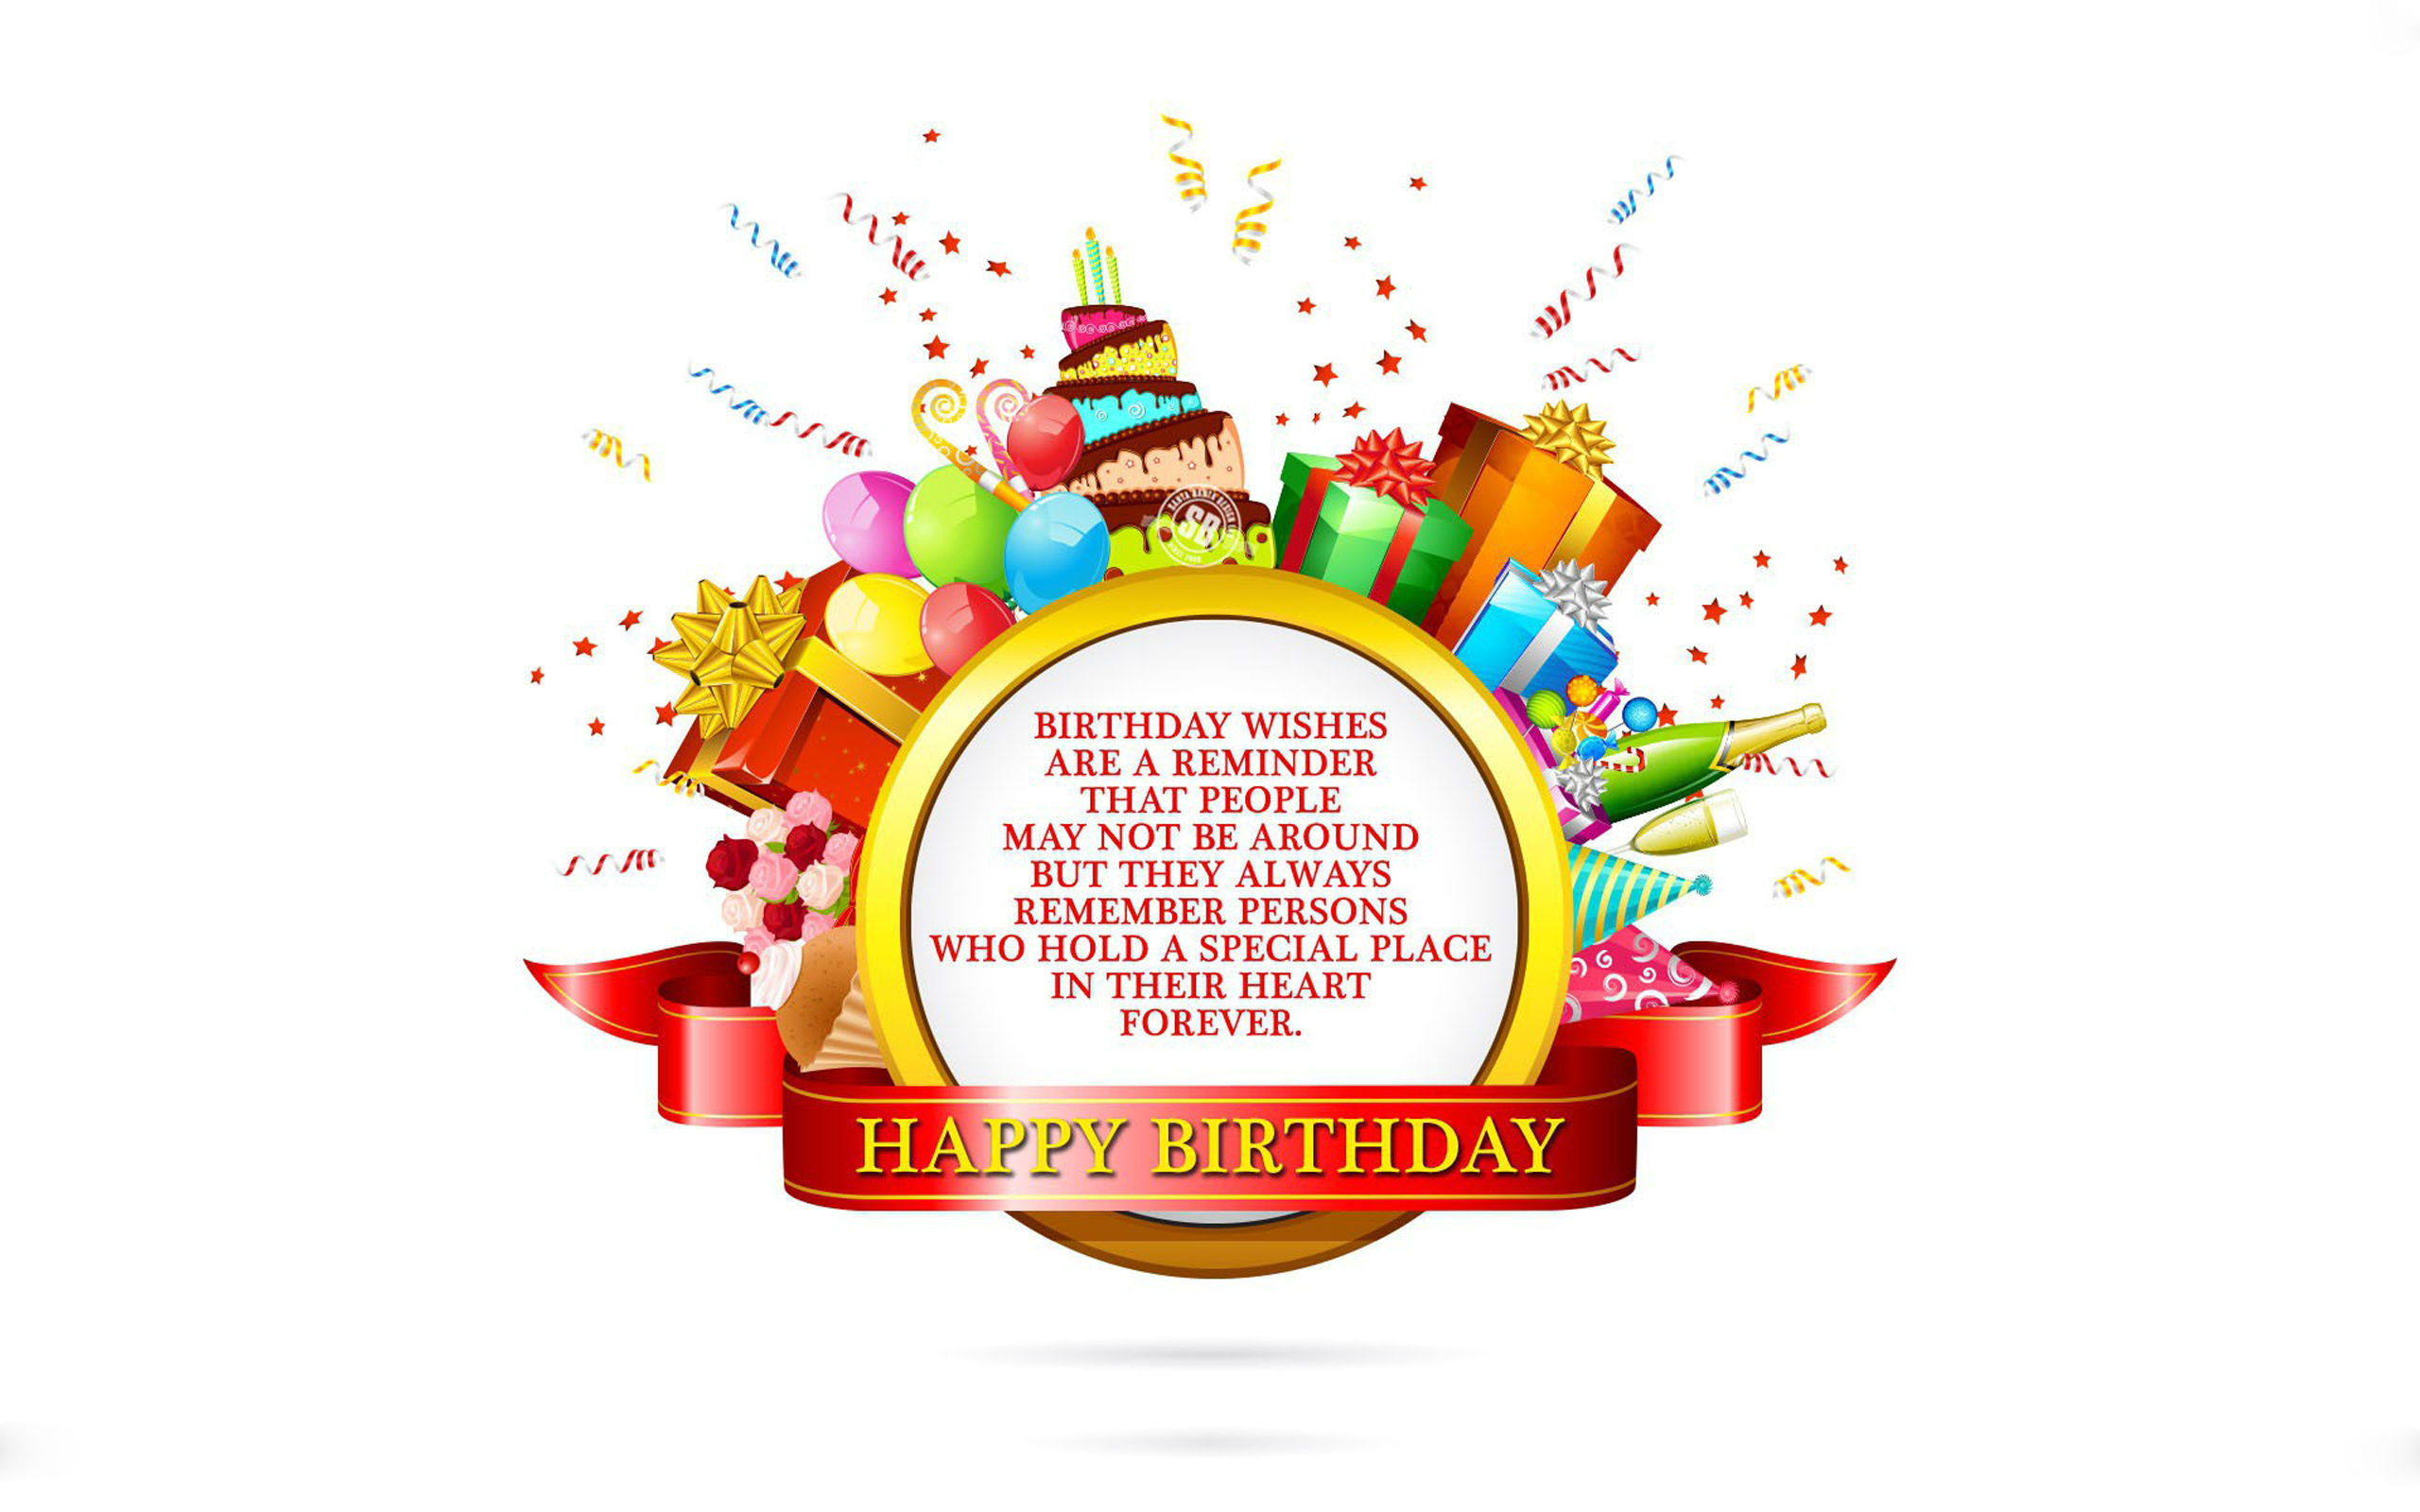 Meaningful Quotes Wallpaper Hd 10 Best Happy Birthday Wishes With Images Quotes Square